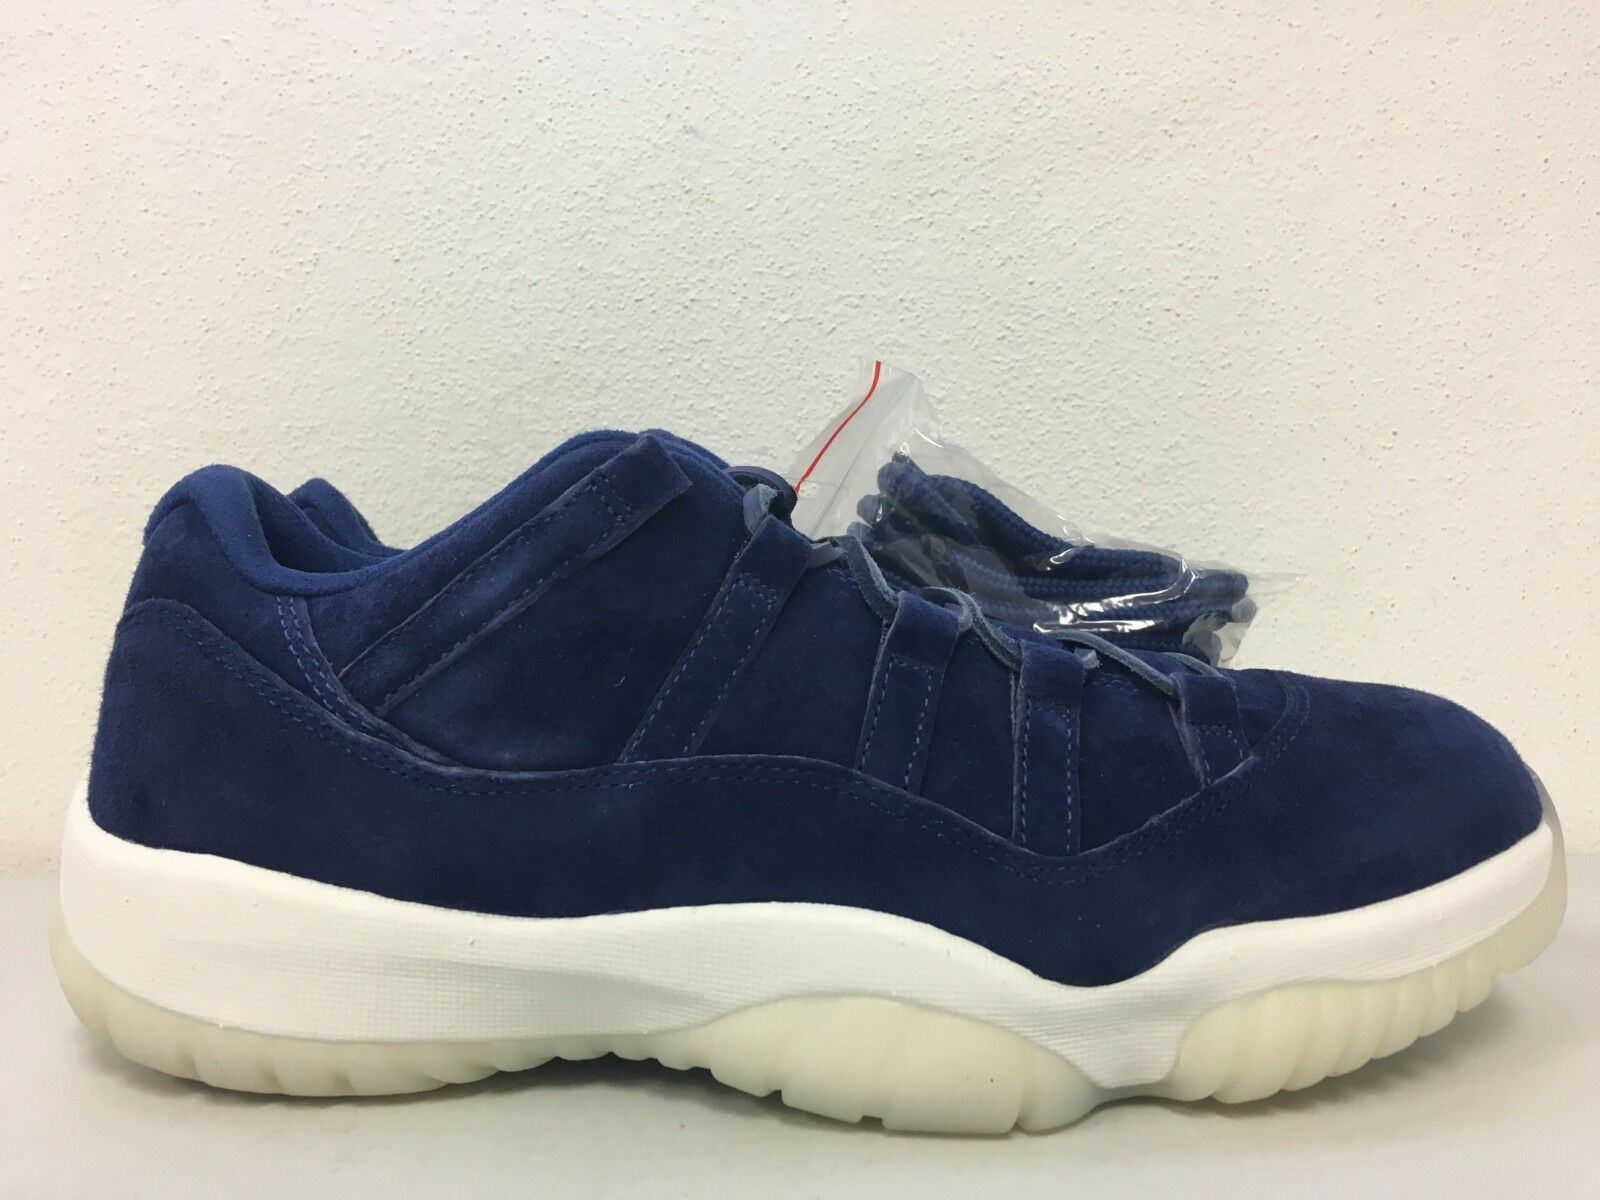 Nike Air Jordan 11 Low Retro Jeter Re2pect Binary Blue AV2187-441 Size 10.5